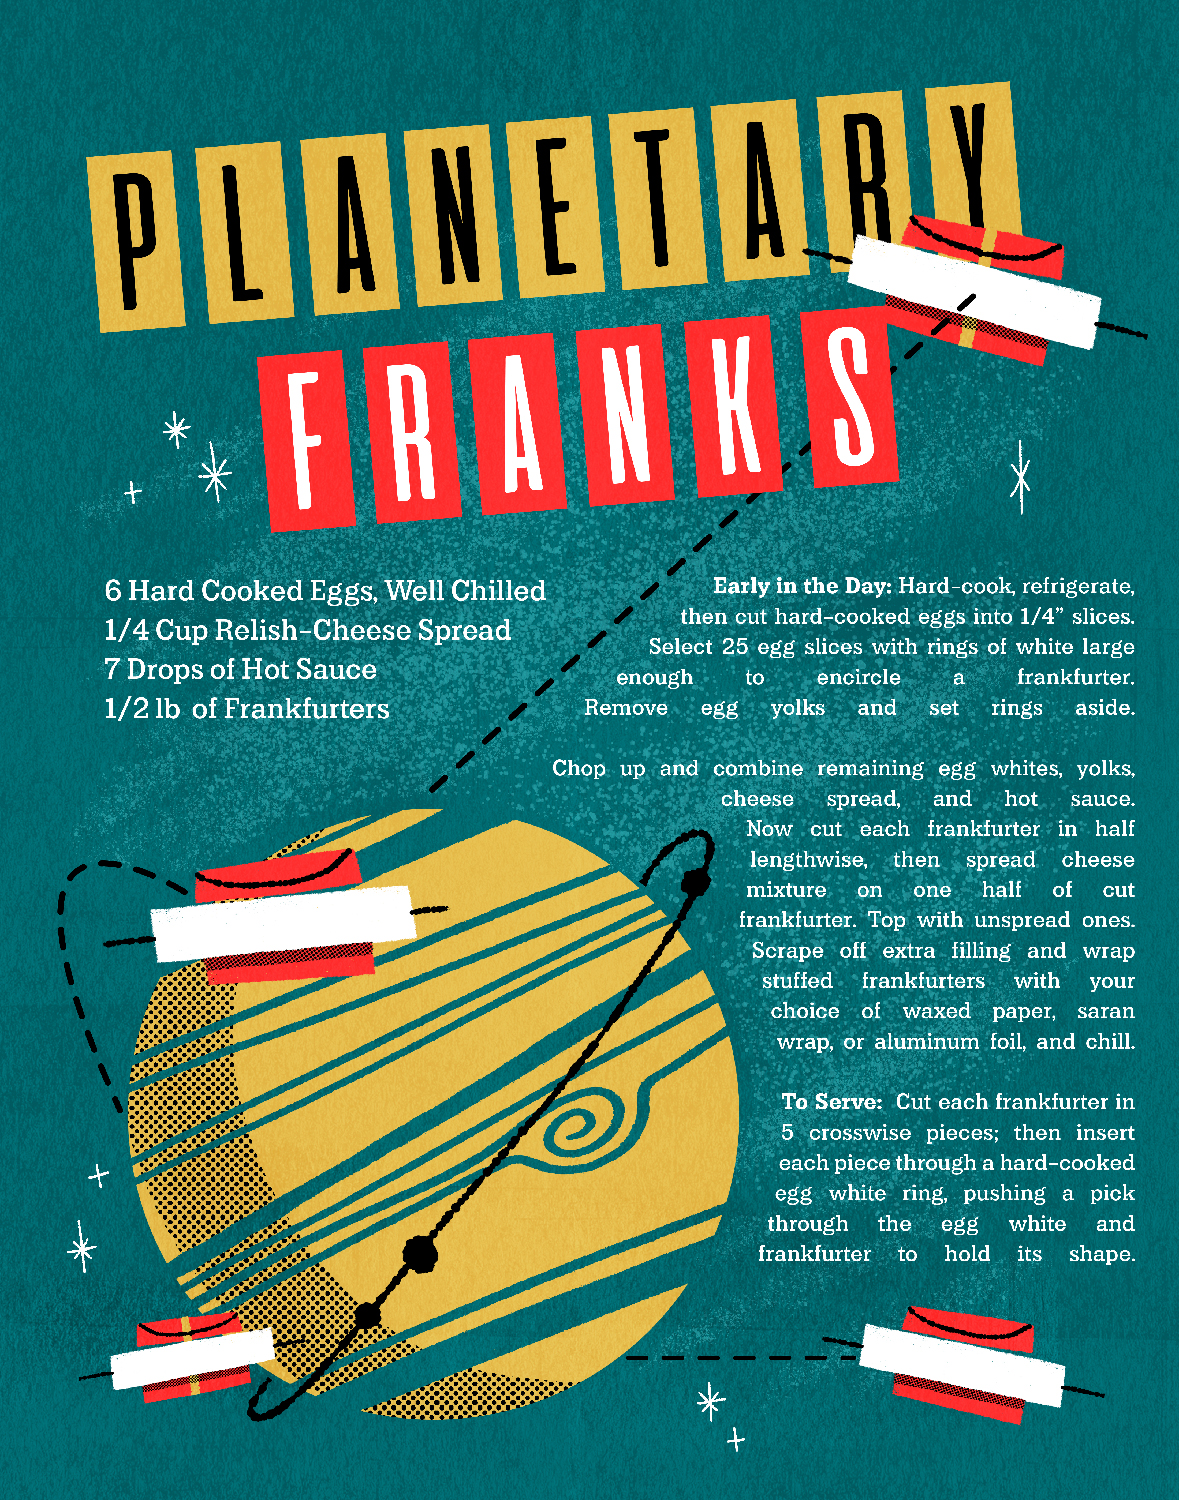 Planetary Franks Vintage Recipe